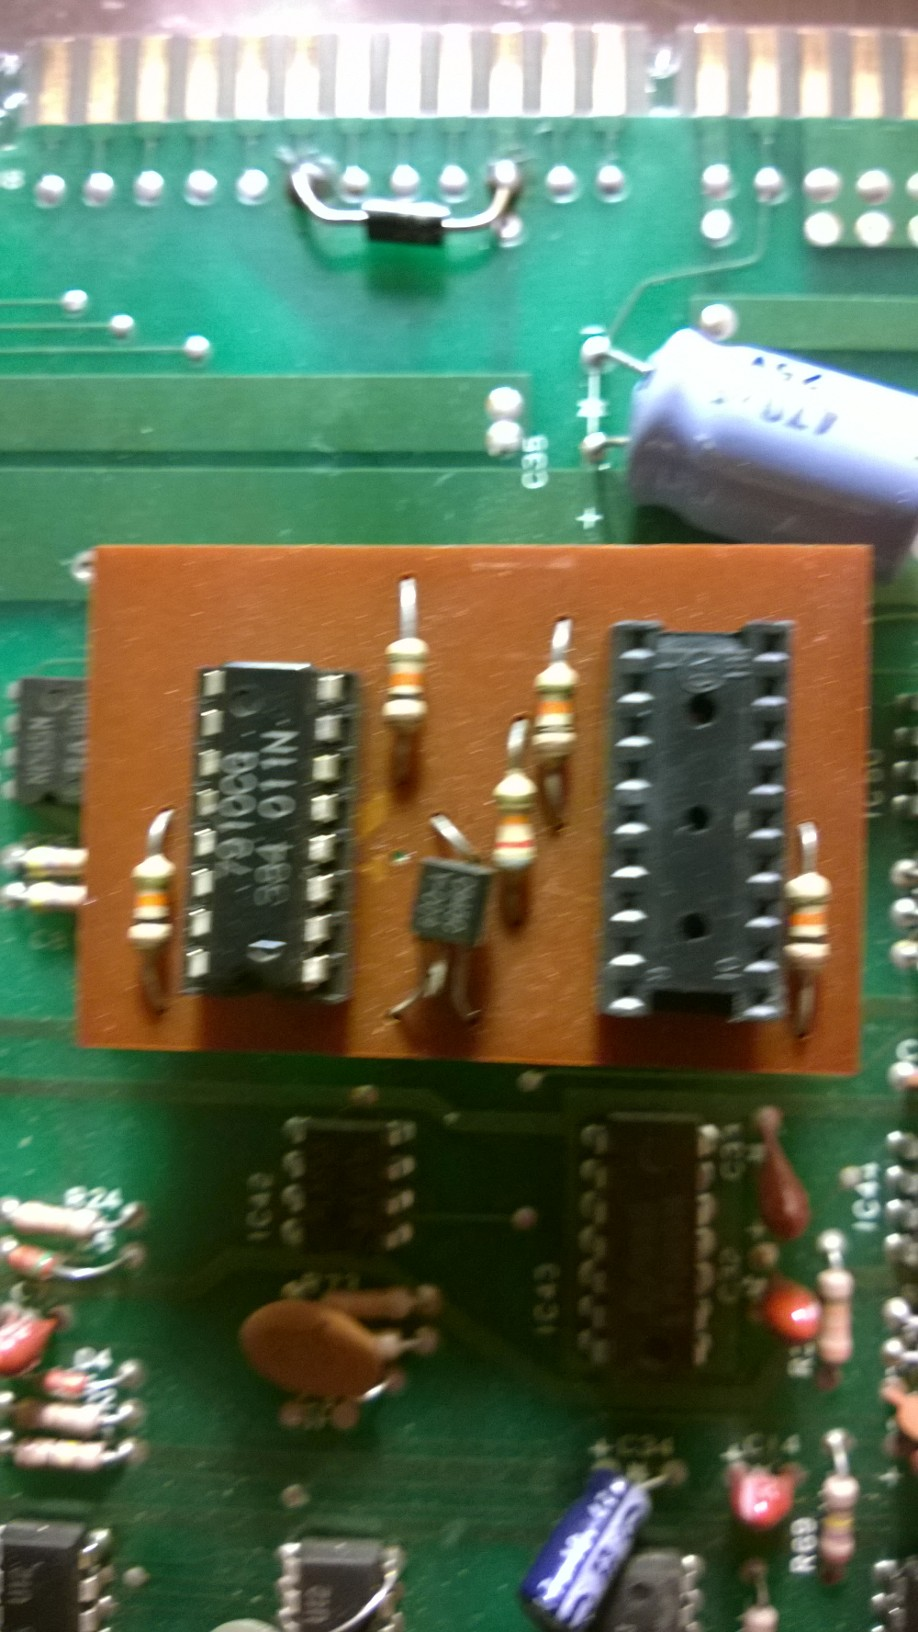 Phoenix Melody Chip Replacement Mm6221aa Programmer Circuit A With An Epson 7910cg Anyone Knows If This Good Workaround Looks Not So Complicated